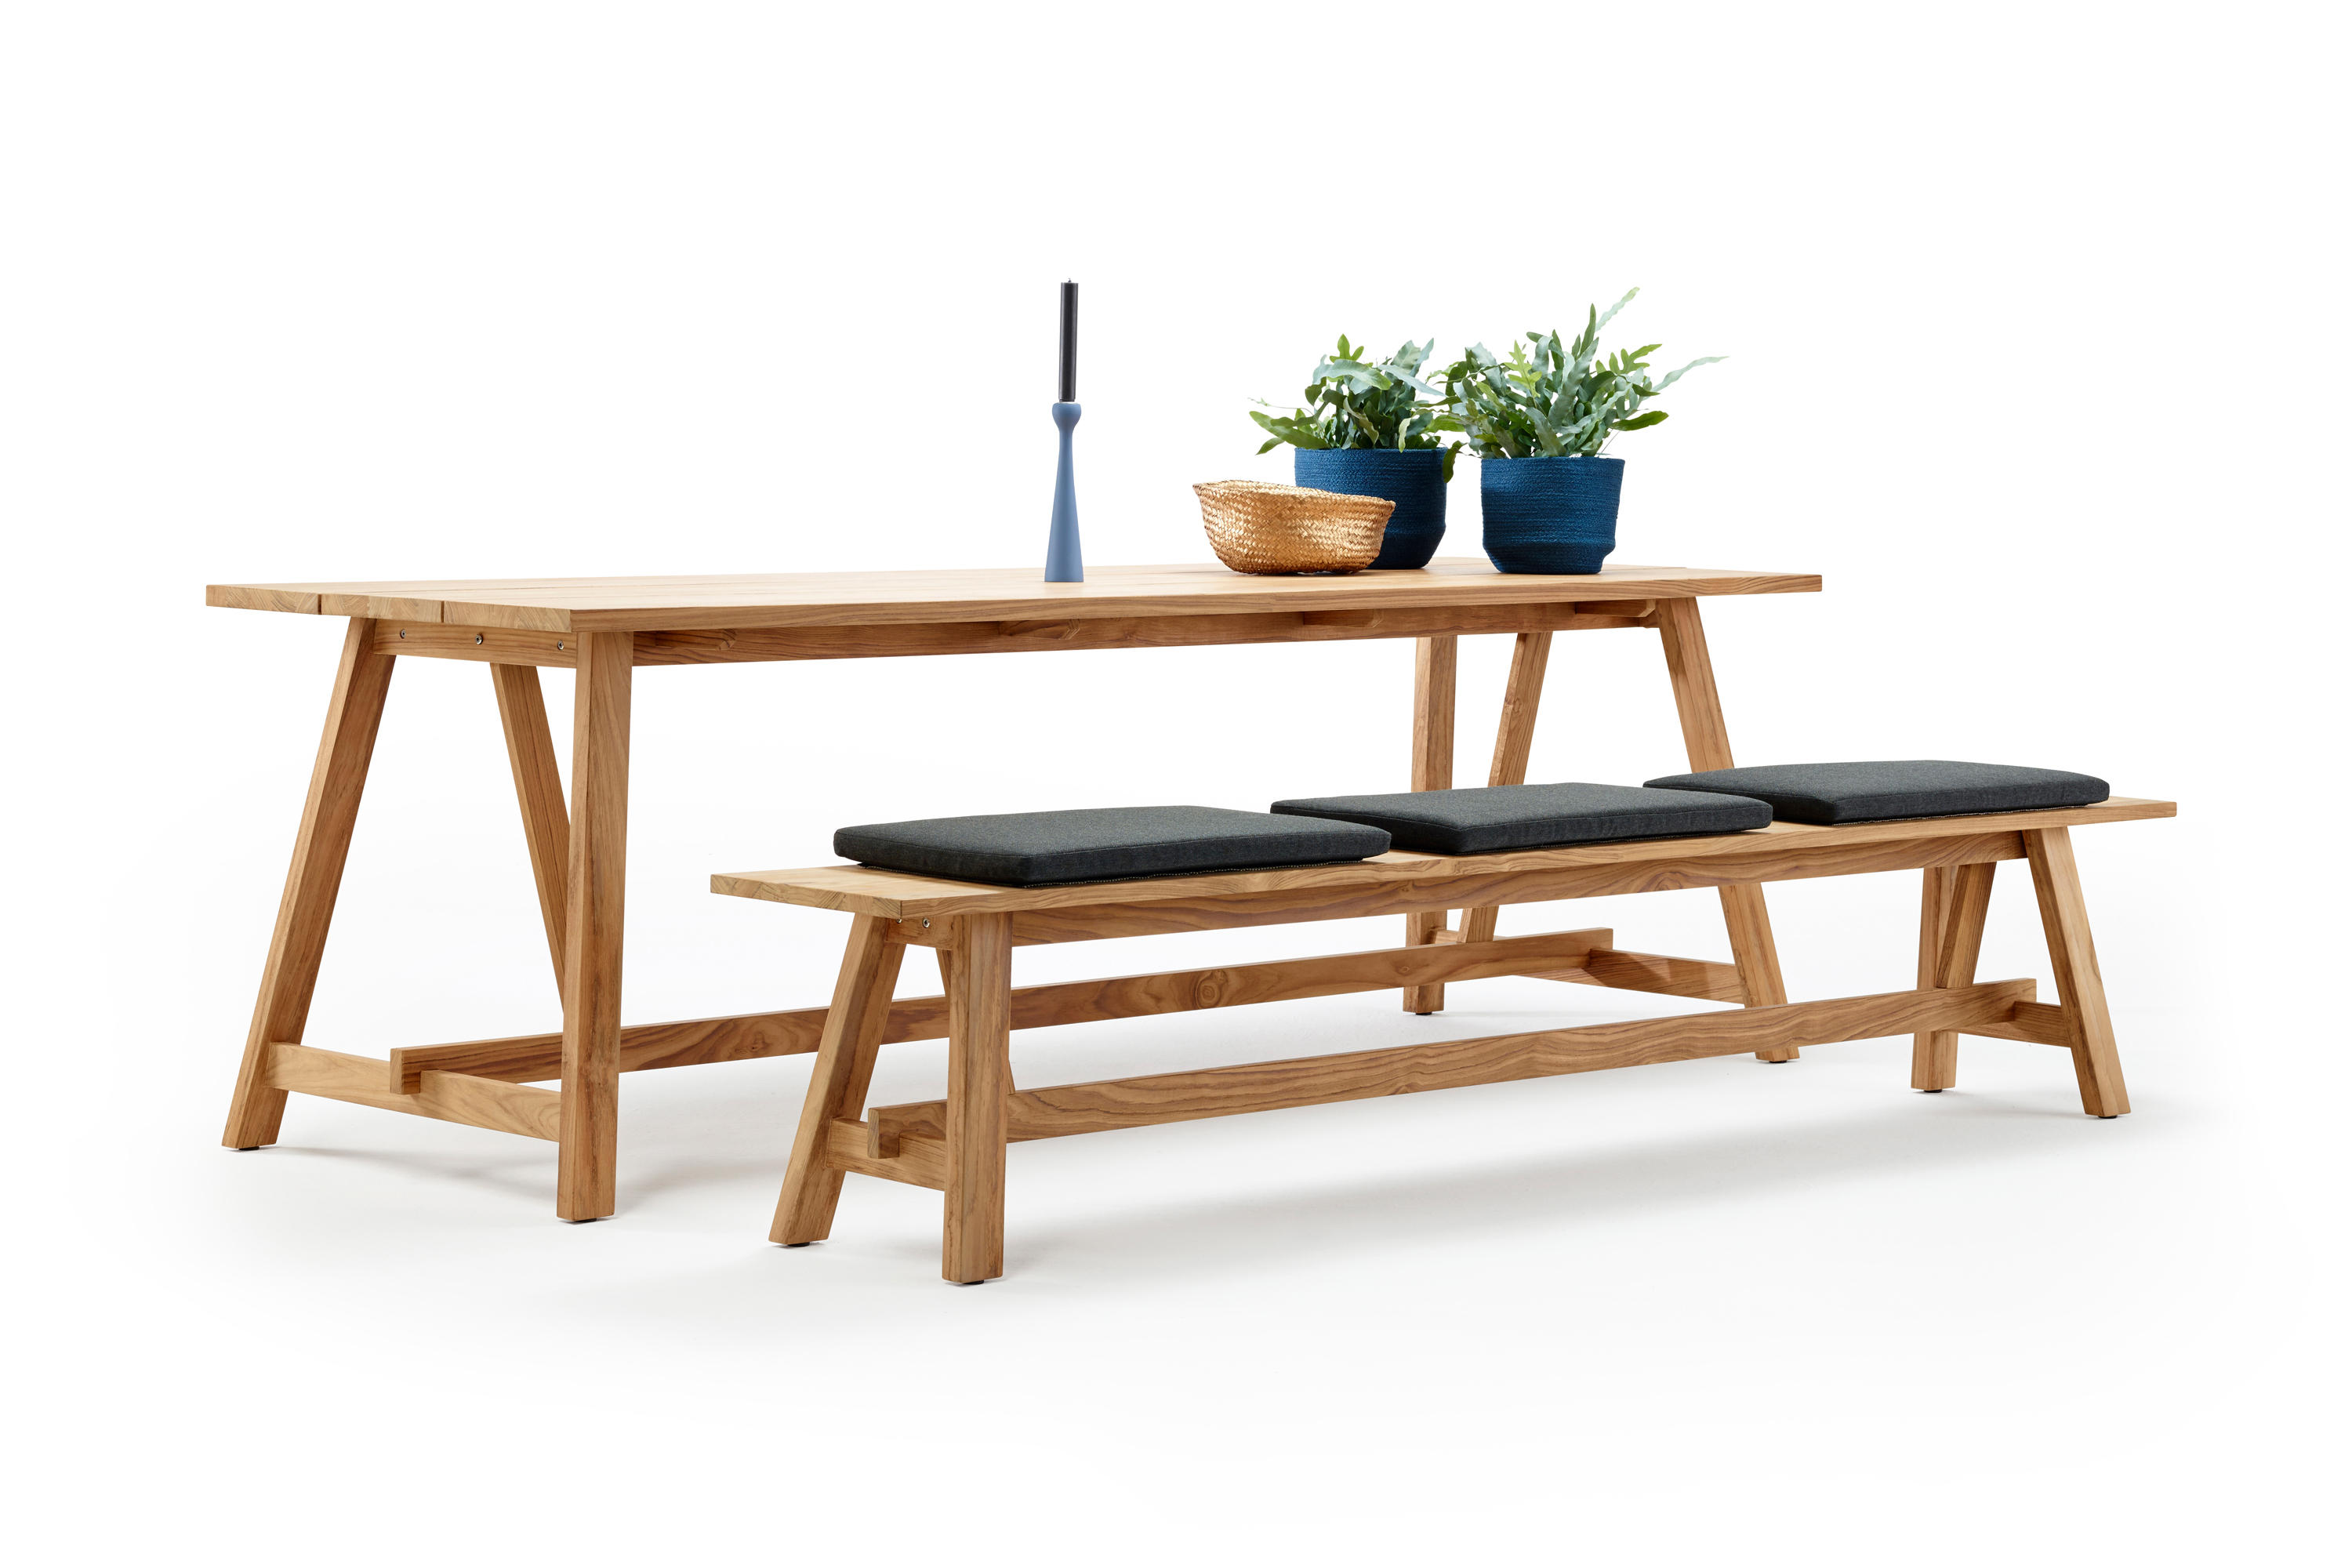 Country Seat Bench Large Garden Benches From Solpuri